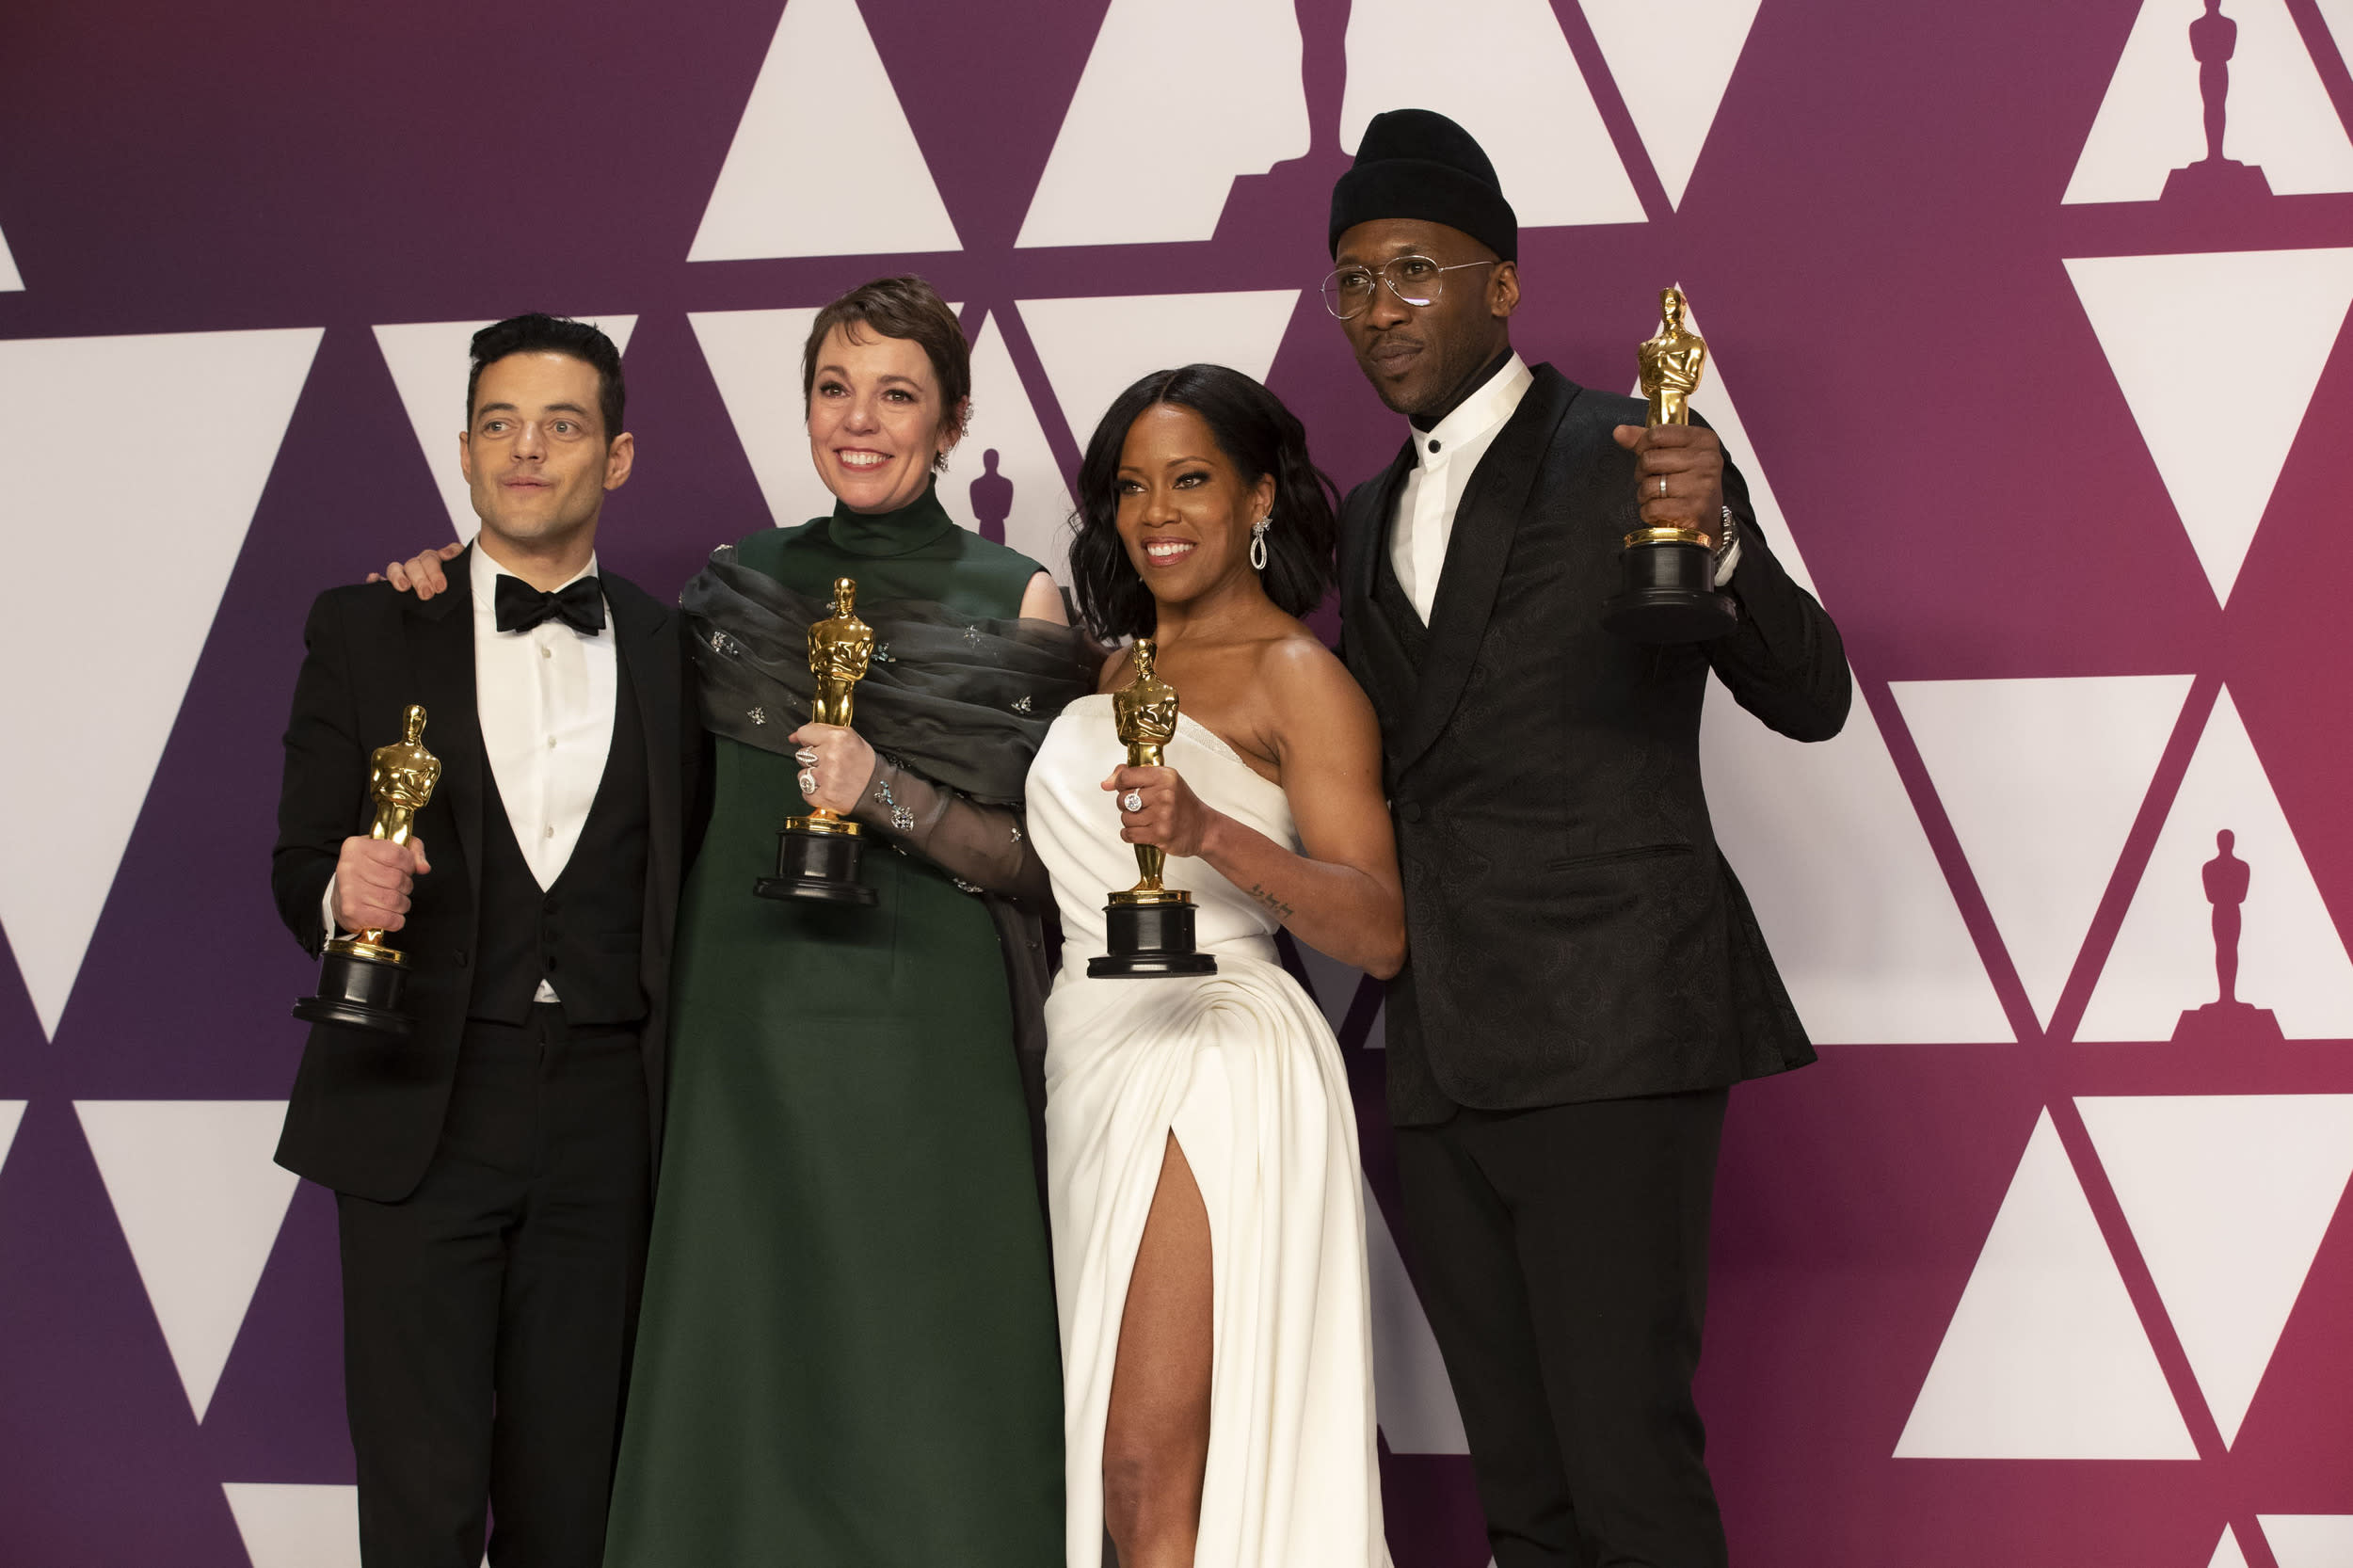 THE OSCARS® - The 91st Oscars® broadcasts live on Sunday, Feb. 24, 2019, at the Dolby Theatre® at Hollywood & Highland Center® in Hollywood and will be televised live on The ABC Television Network at 8:00 p.m. EST/5:00 p.m. PST.  (Rick Rowell via Getty Images) RAMI MALEK, OLIVIA COLMAN, REGINA KING, MAHERSHALA ALI